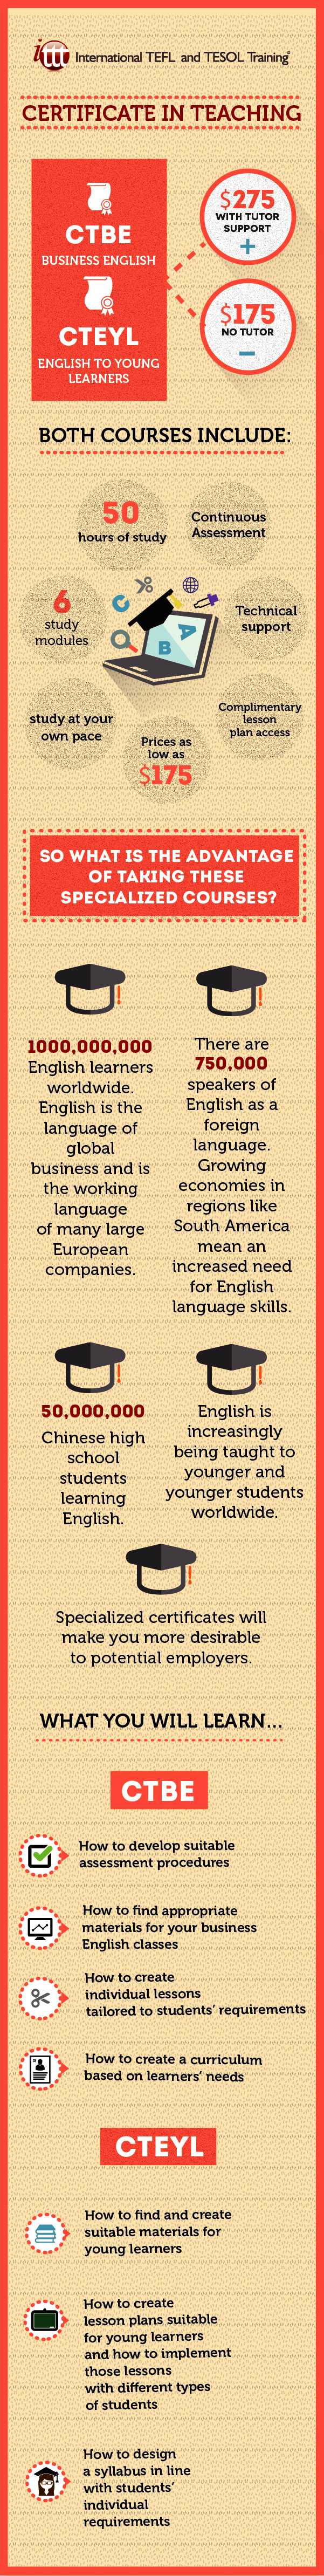 Teach Business English & Teach to Young Learners